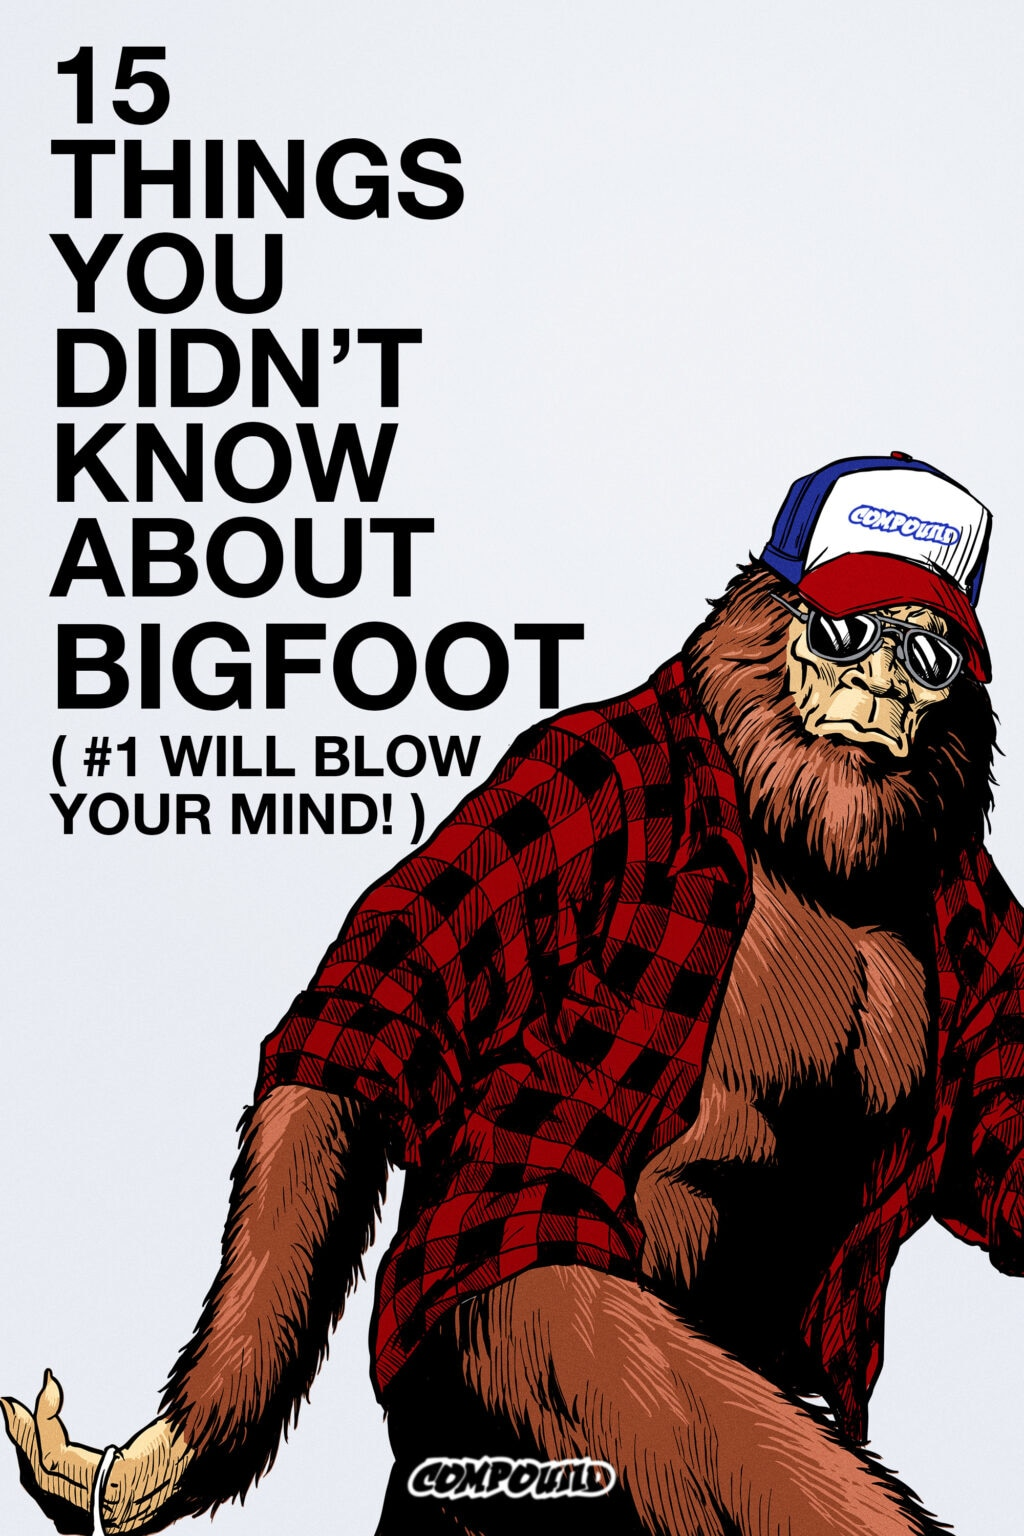 15 things you didnt know about bigfoot poster 1024x1536 - Exclusive: 15 THINGS YOU DIDN'T KNOW ABOUT BIGFOOT Clip Finds Mutilated Body